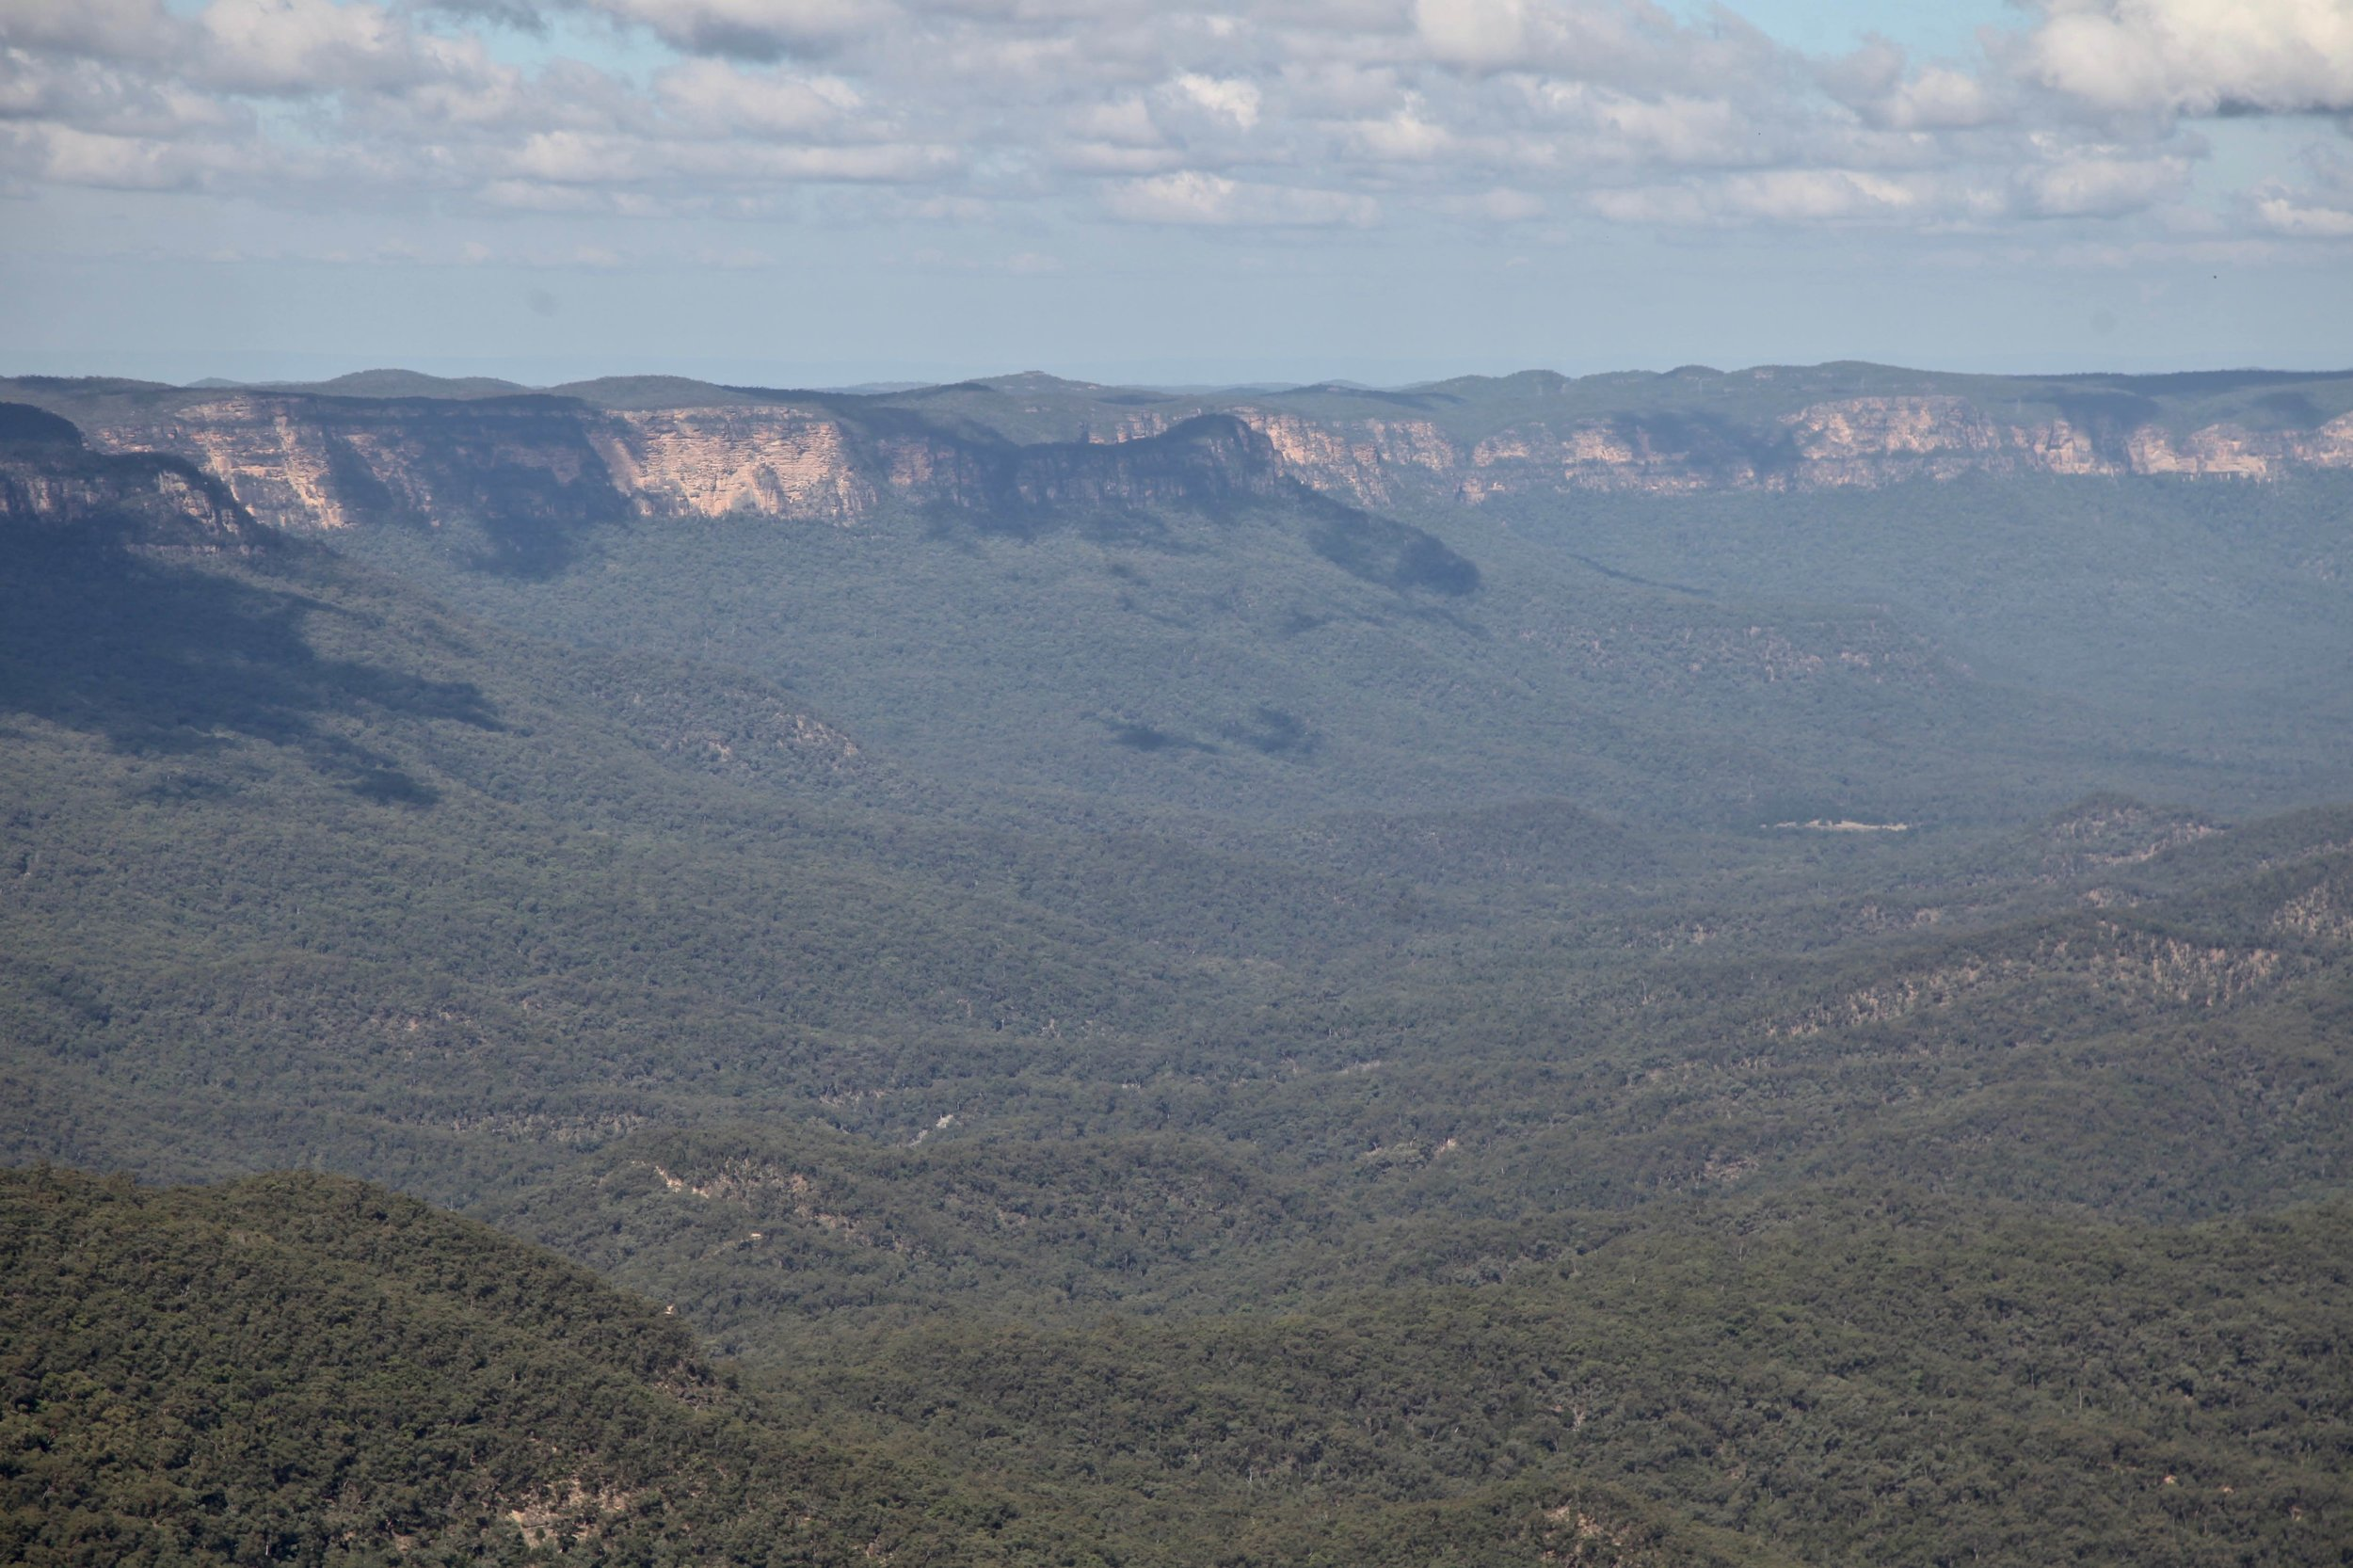 The Prince Henry Cliff walk offers easy access to sweeping views of the Jamison Valley.